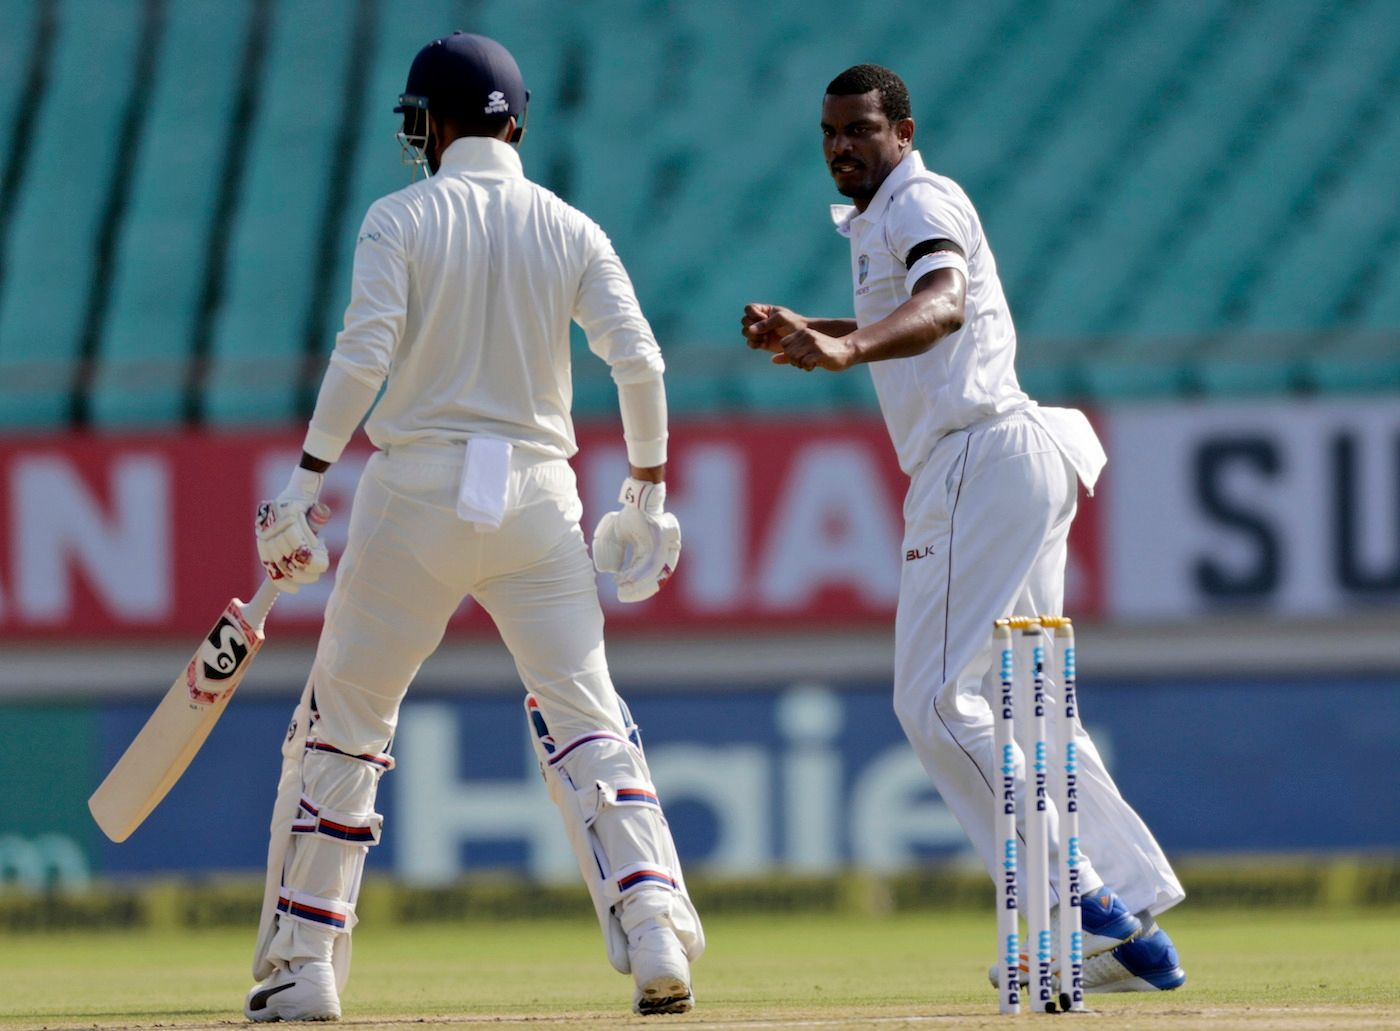 Match Day : India v West Indies, 1st Test, Rajkot, 2nd day | Rest